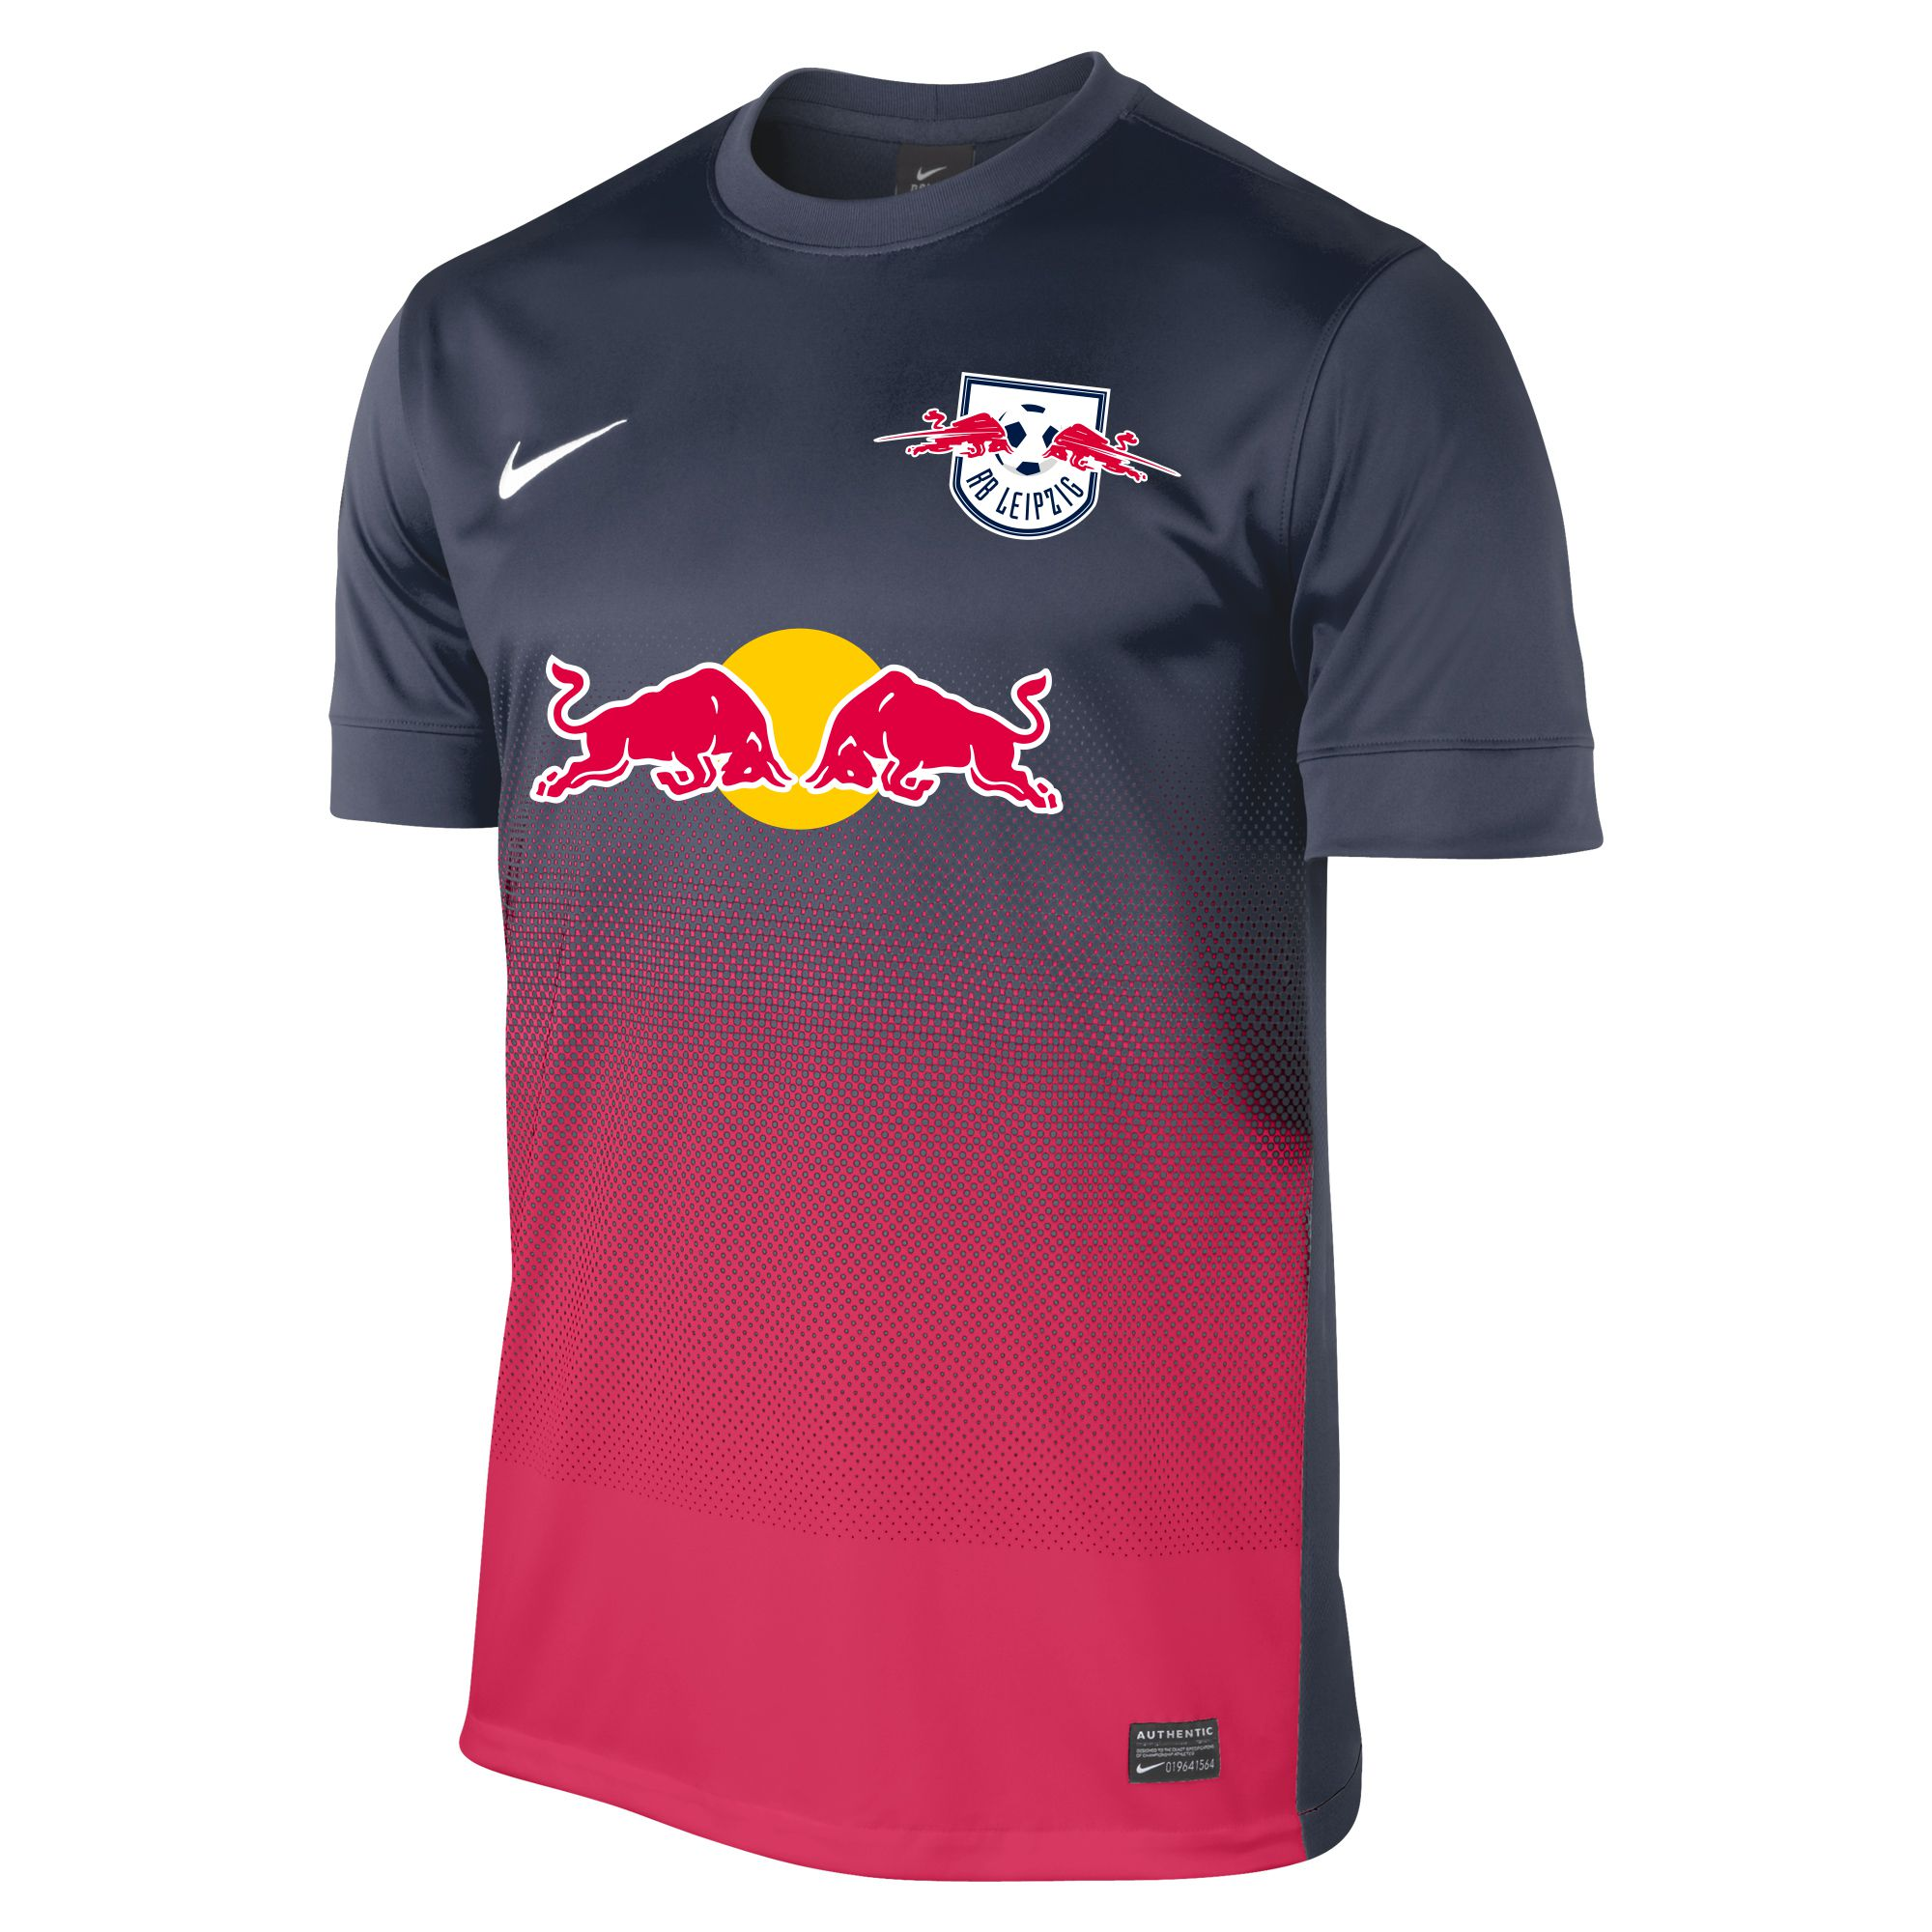 rb leipzig login